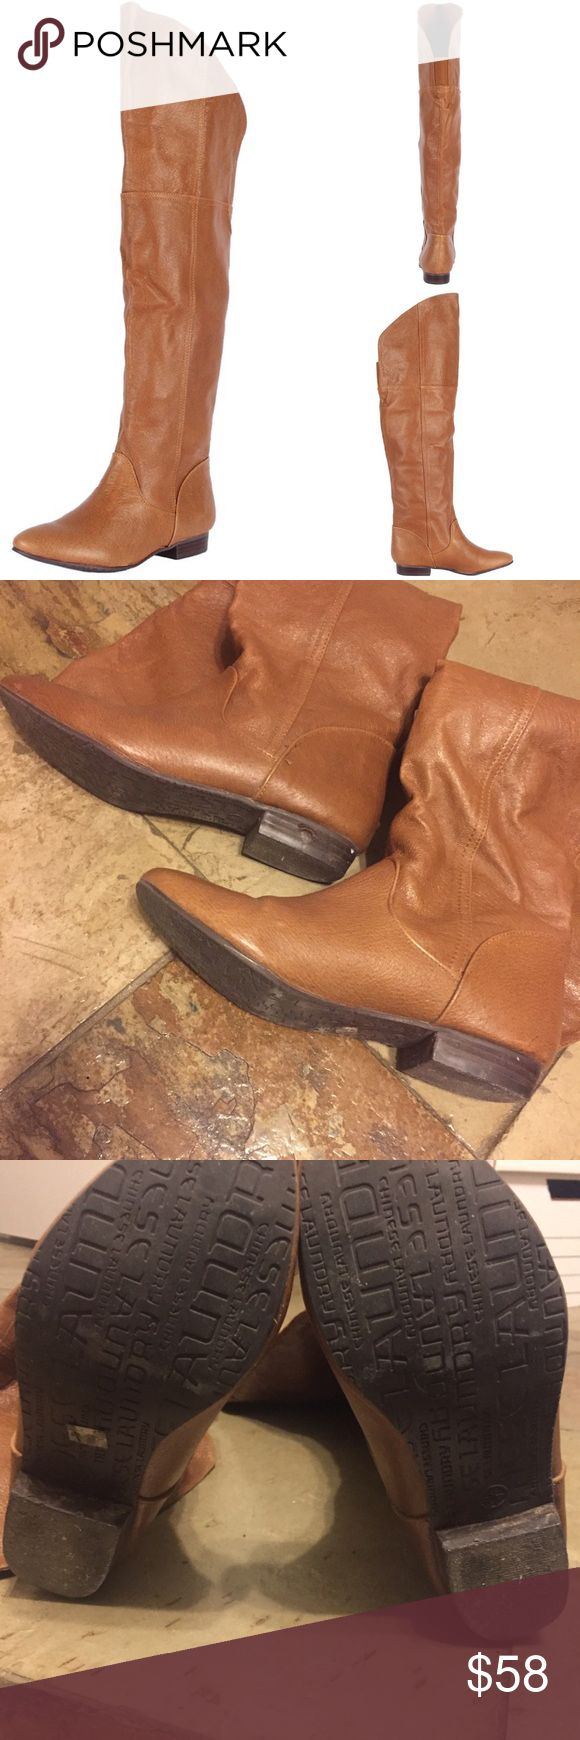 "Genuine leather Over the knee boots Good used condition over the knee boots. These match everything! ""South Bay over the knee boots"" on cognac. 1/2 inch heel height. 19 inch shaft, 12 inch circumference. Genuine leather. Offers welcome! Chinese Laundry Shoes Over the Knee Boots"